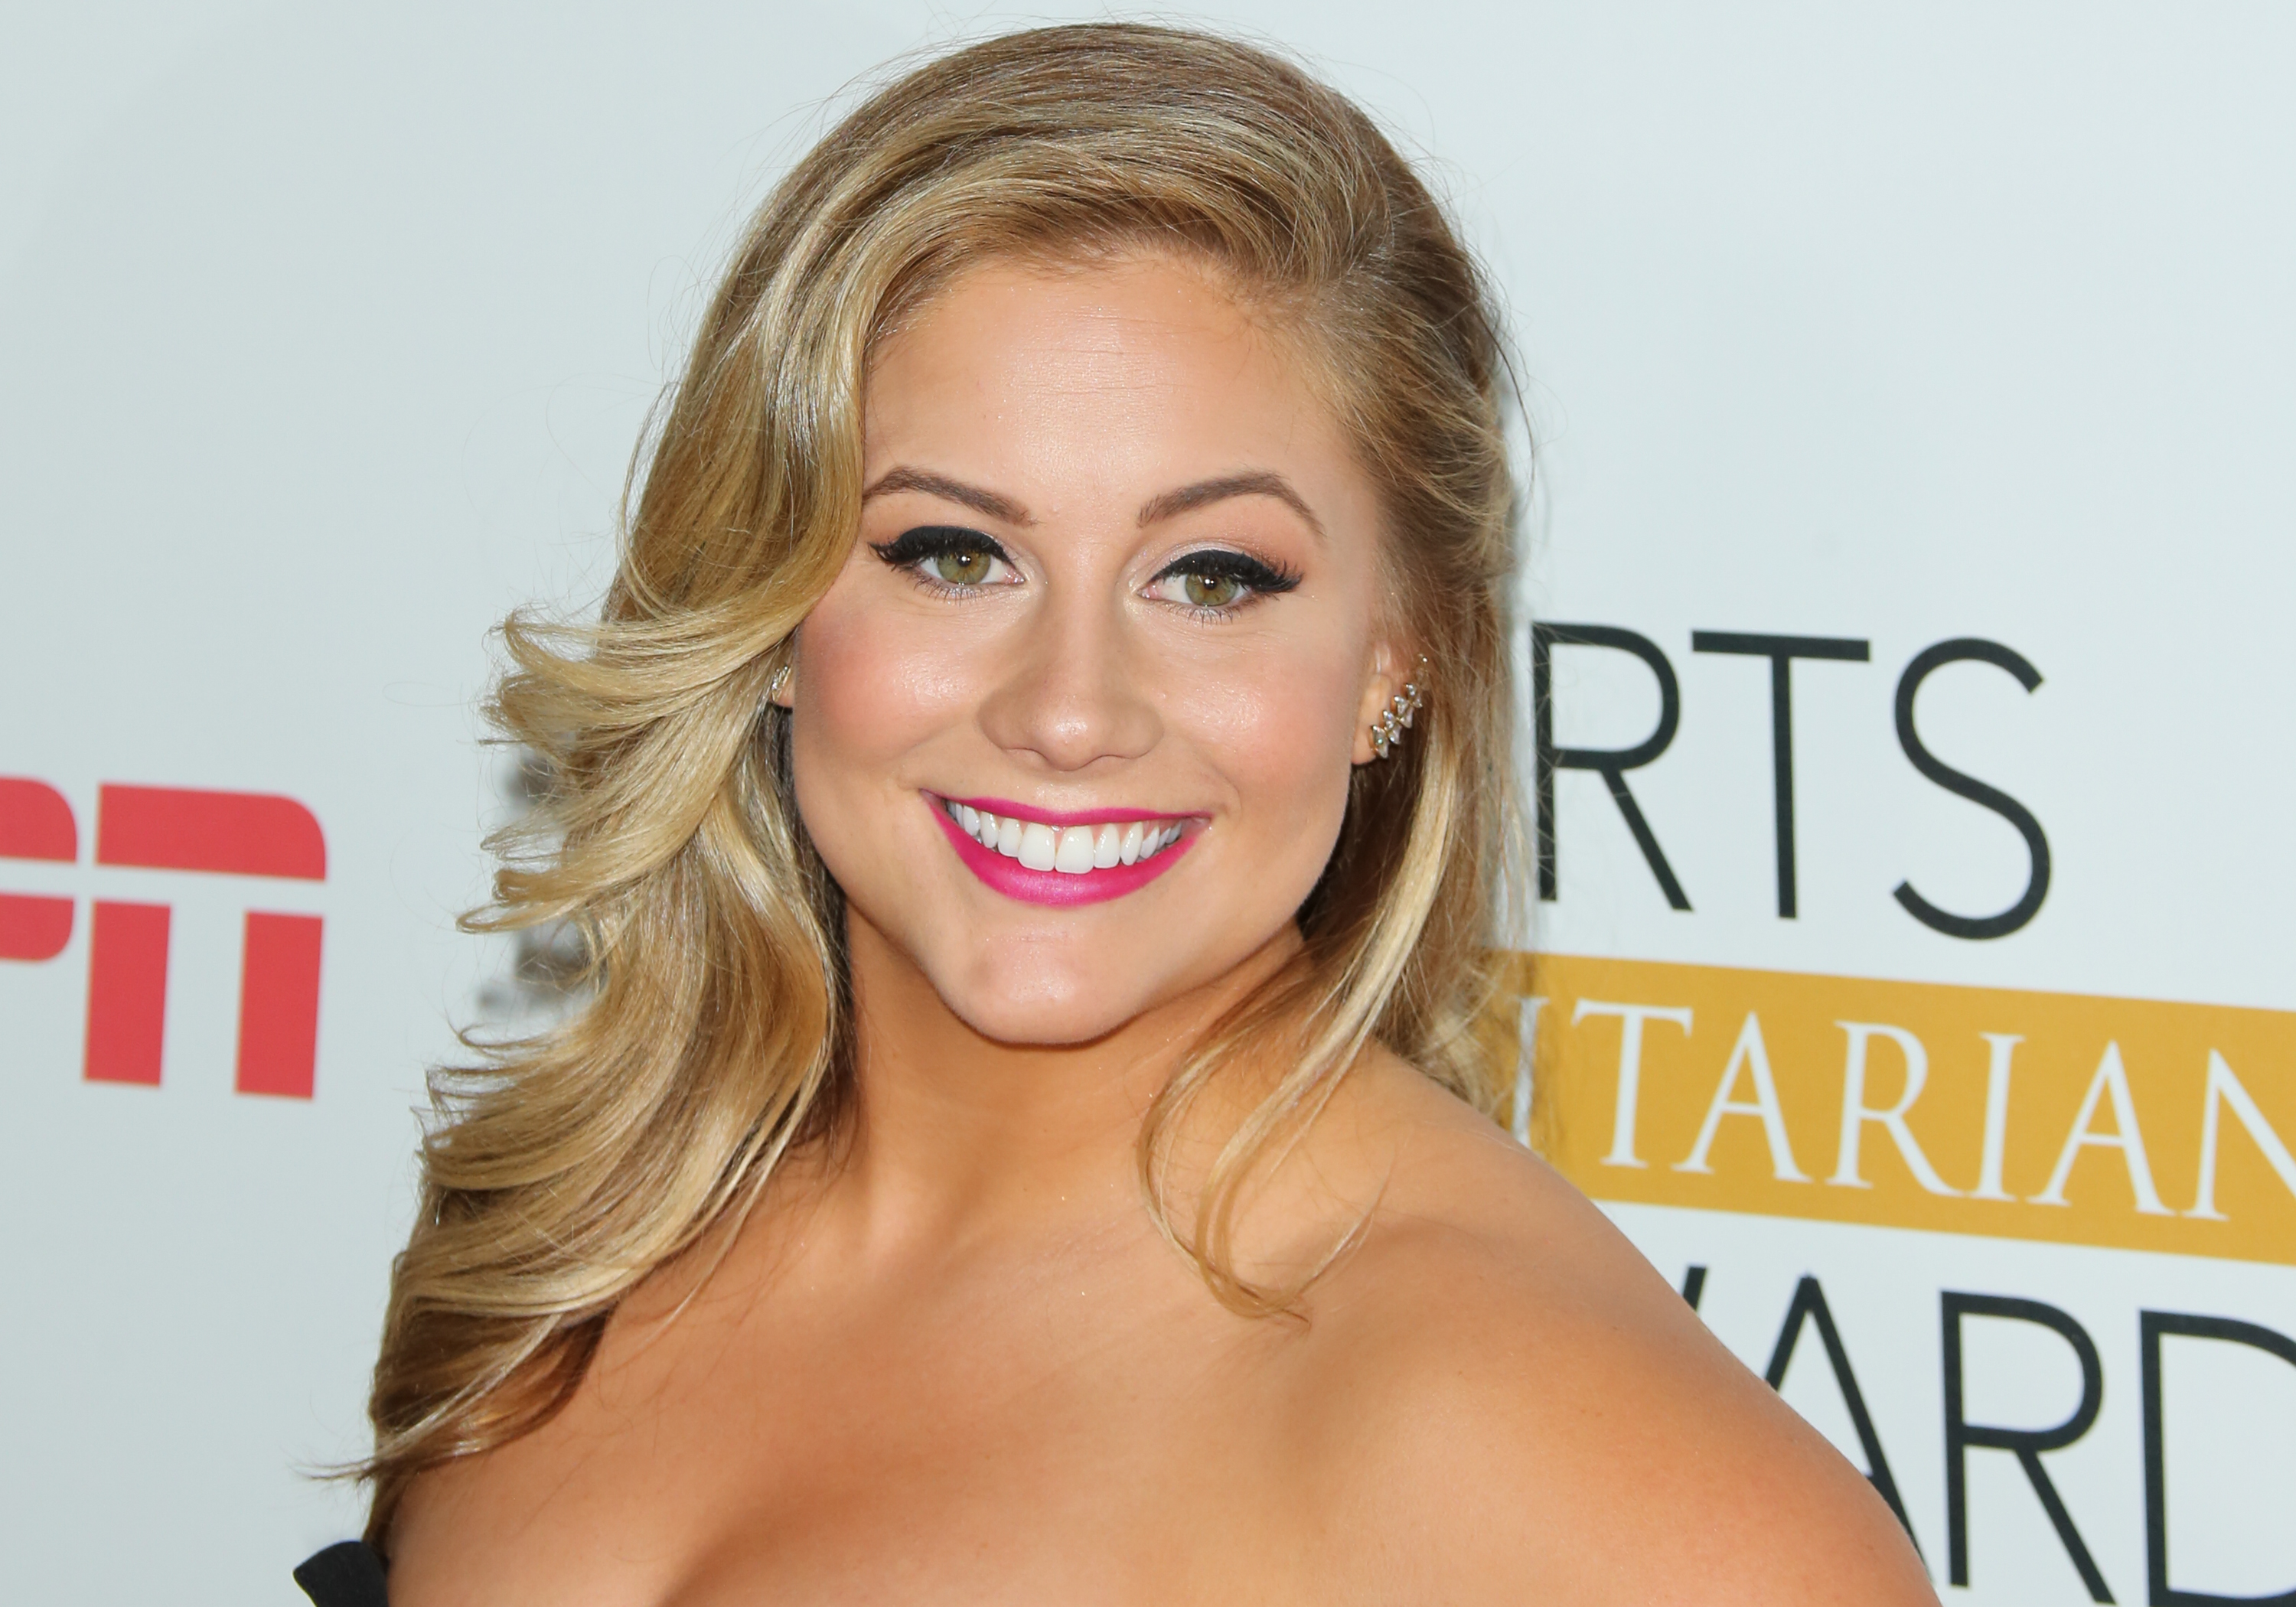 LOS ANGELES, CA - JULY 14:  Former Olympic American Artistic Gymnast Shawn Johnson attends the 2015 Sports Humanitarian Of The Year Awards at The Conga Room at L.A. Live on July 14, 2015 in Los Angeles, California.  (Photo by Paul Archuleta/FilmMagic)